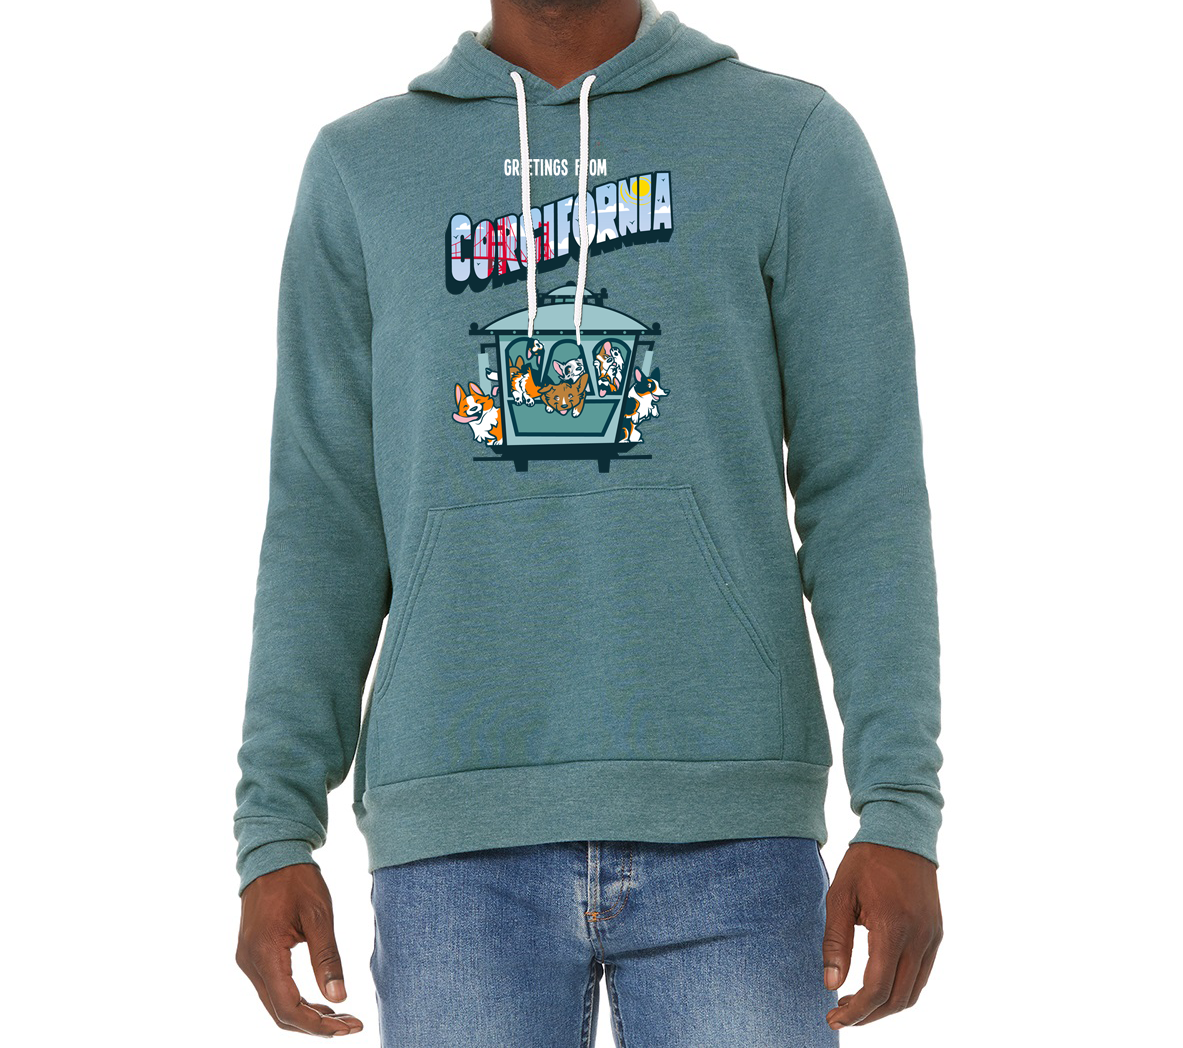 5th ANNIVERSARY CORGIFORNIA® CABLE CAR | UNISEX SWEATSHIRT IN SMALL AND LARGE ONLY